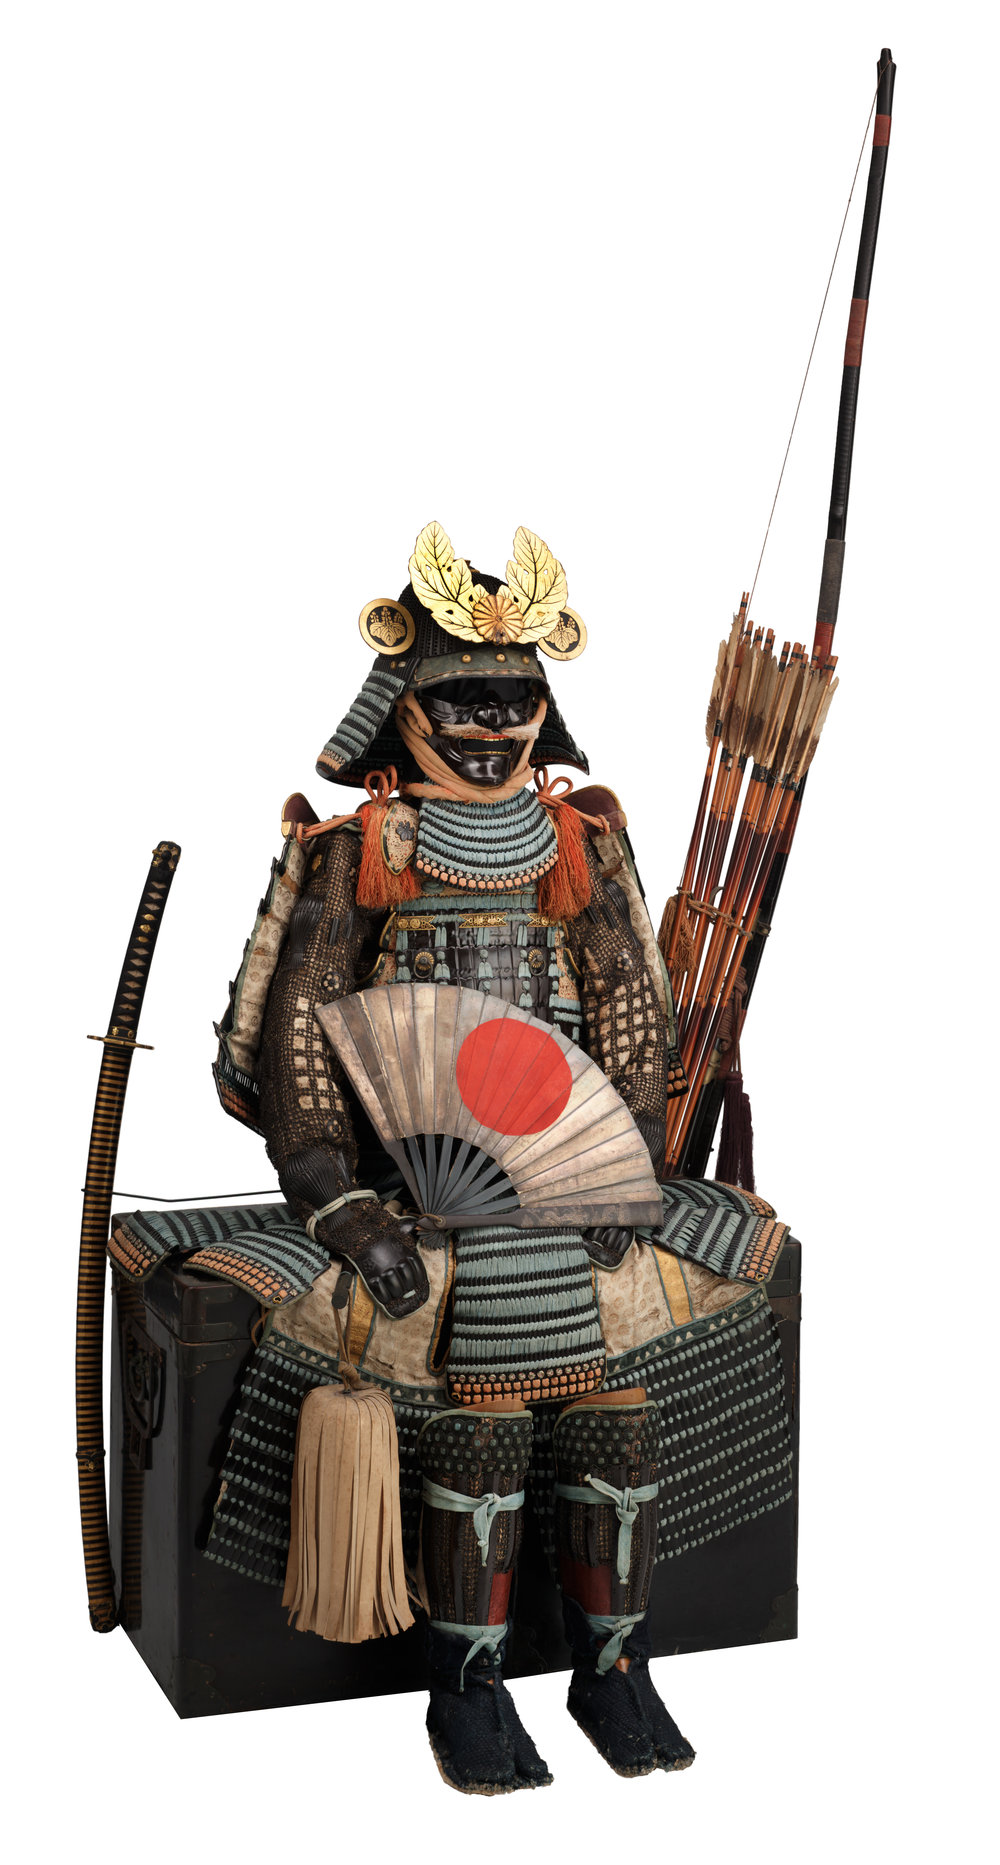 Nuinobedō tōsei gusoku   armor and military equipment